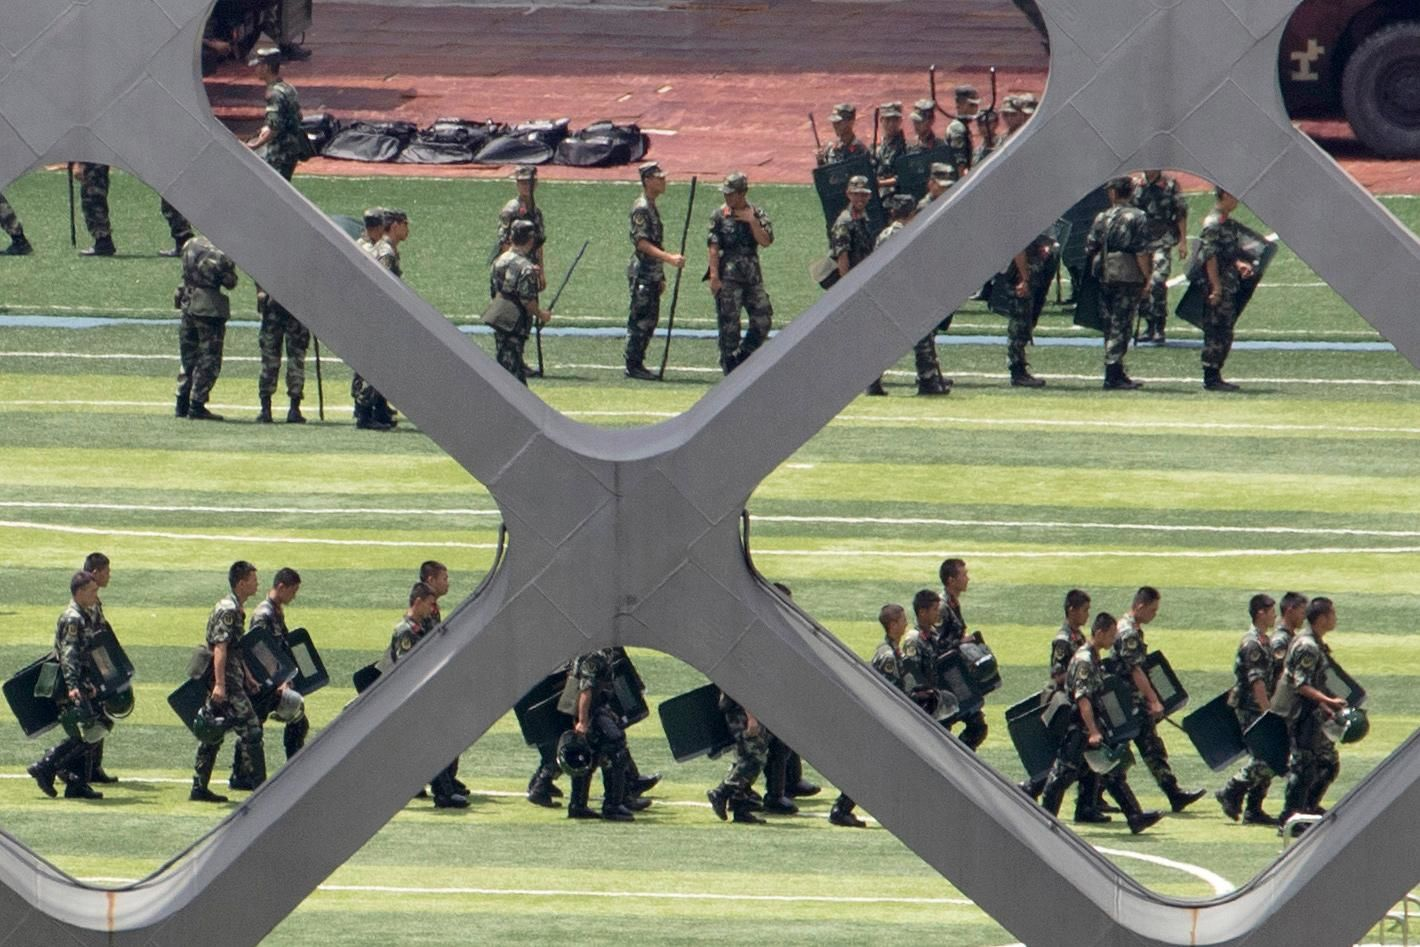 Chinese paramilitary policemen go through drills at the Shenzhen Bay Stadium in Shenzhen in Southern China's Guangdong province, Sunday, Aug. 18, 2019.{ } (AP Photo/Ng Han Guan)